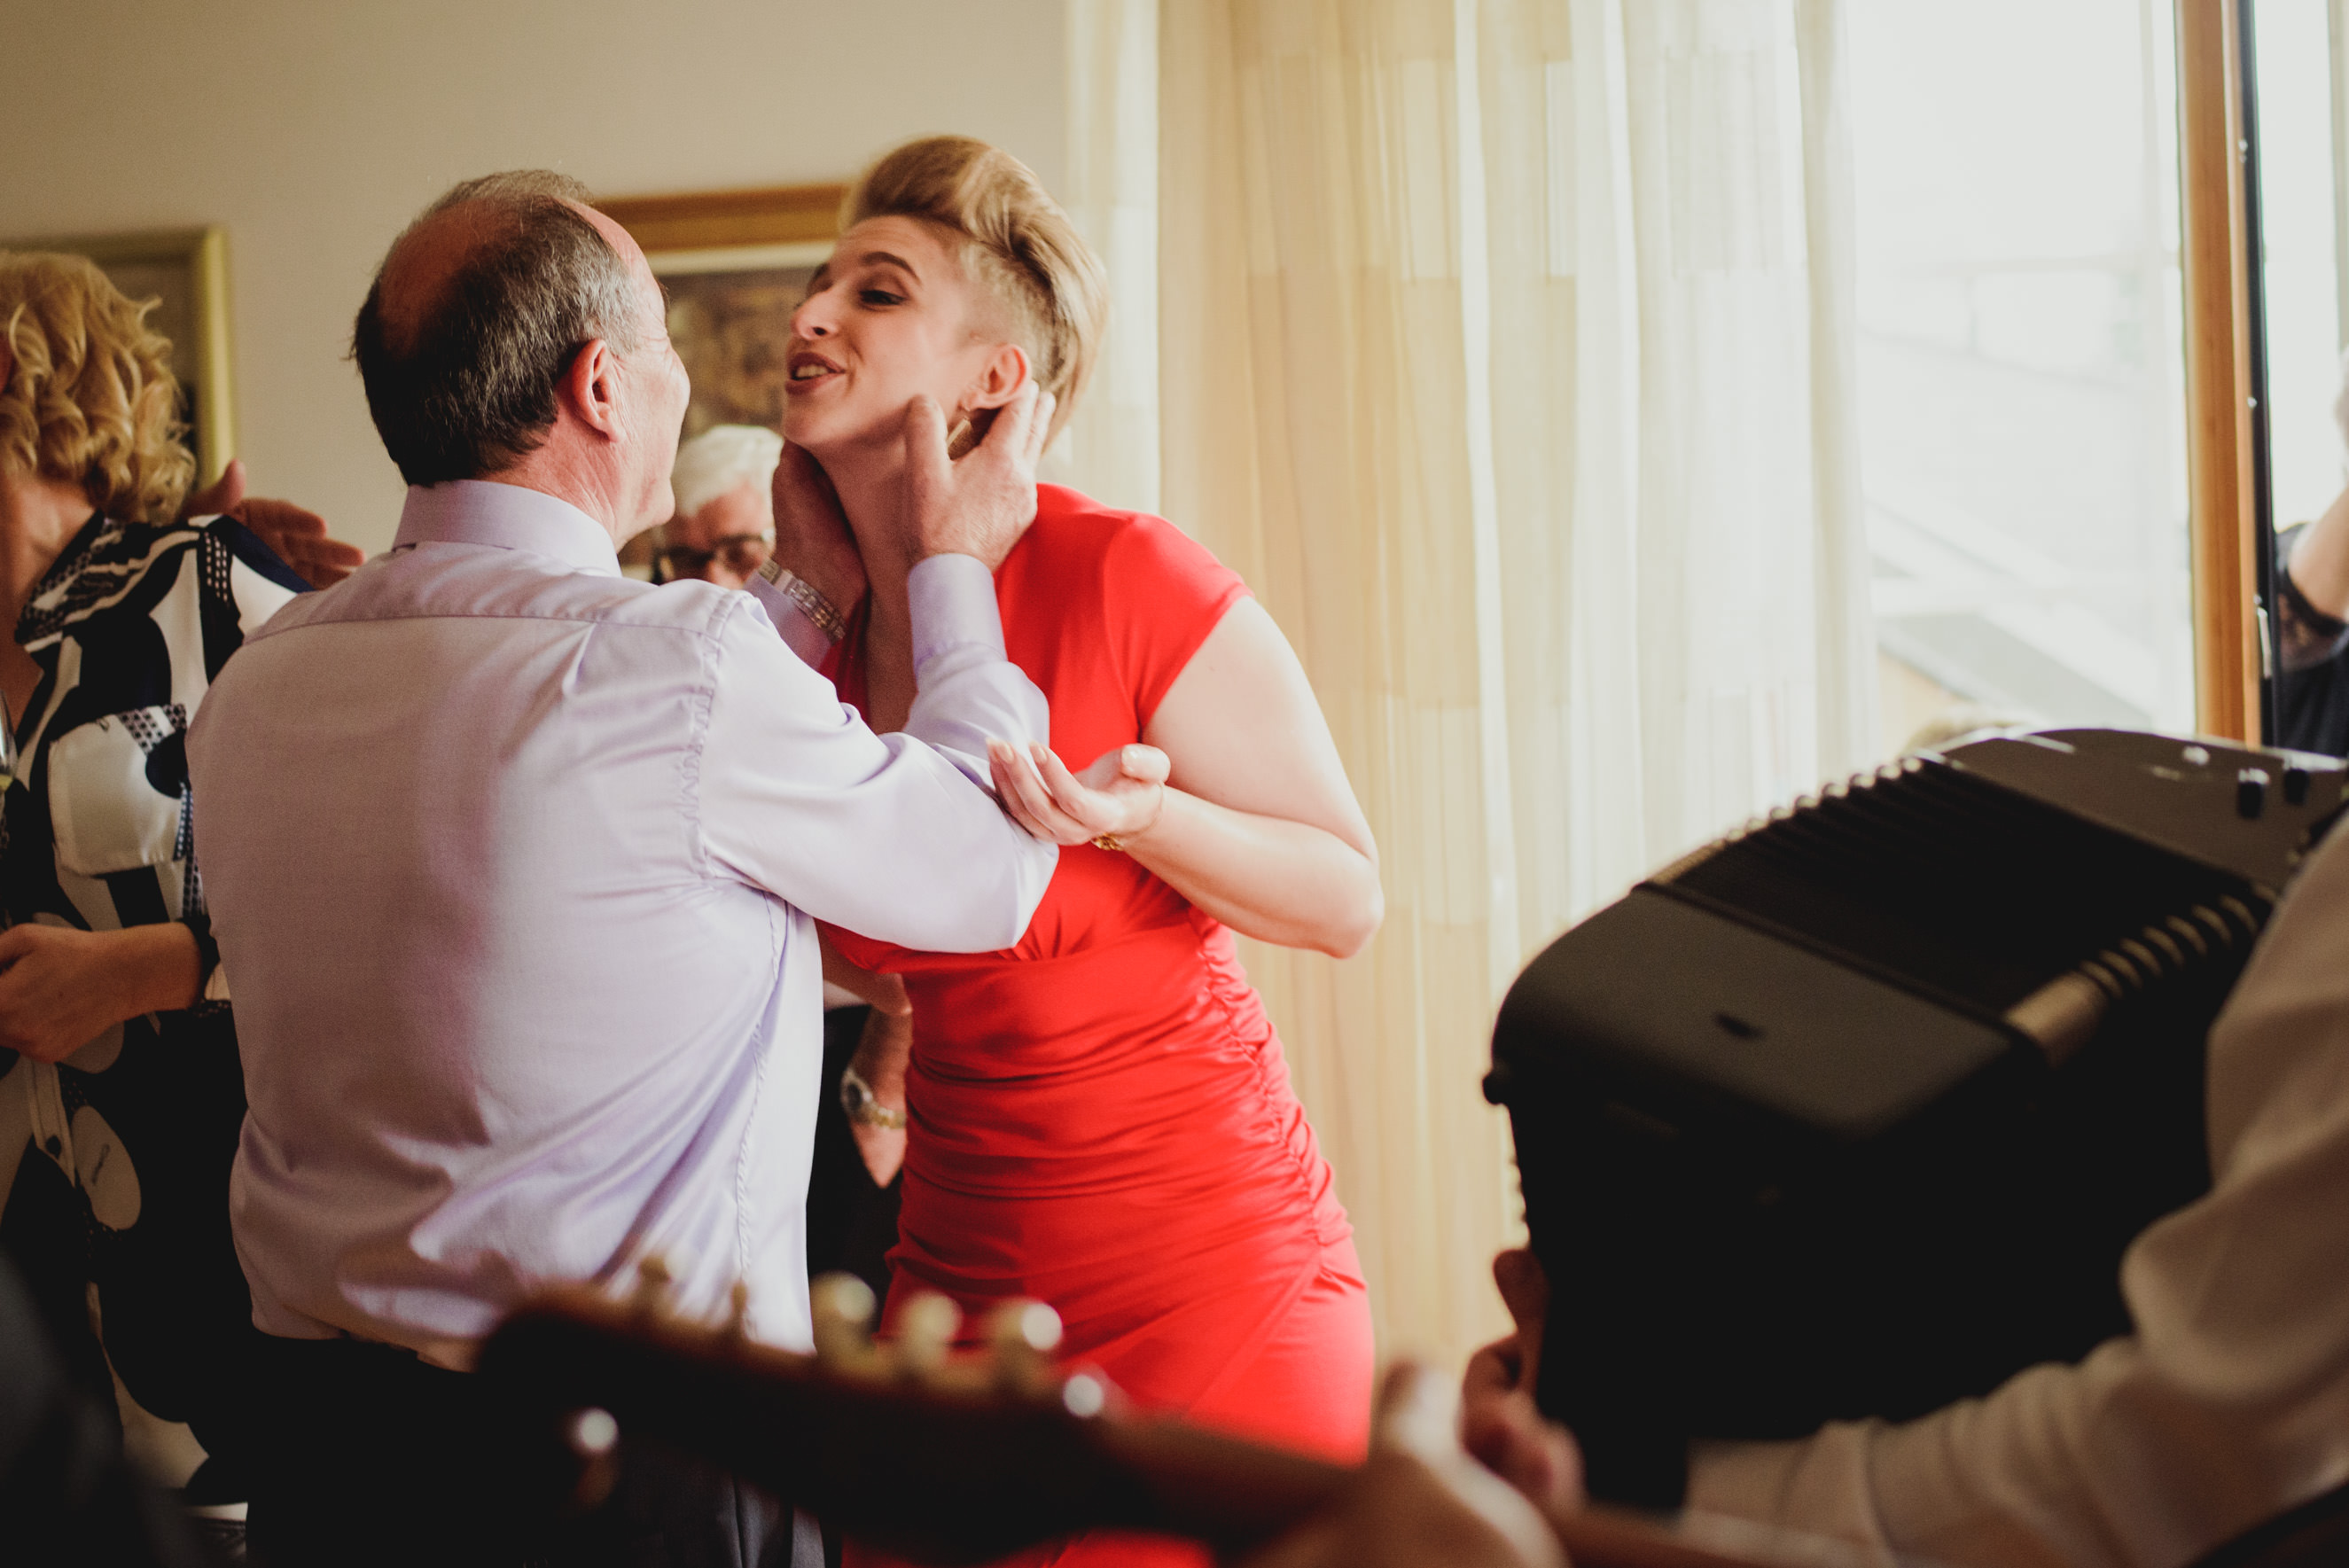 father and sister of the groom singing to the music and enjoying private time during the day